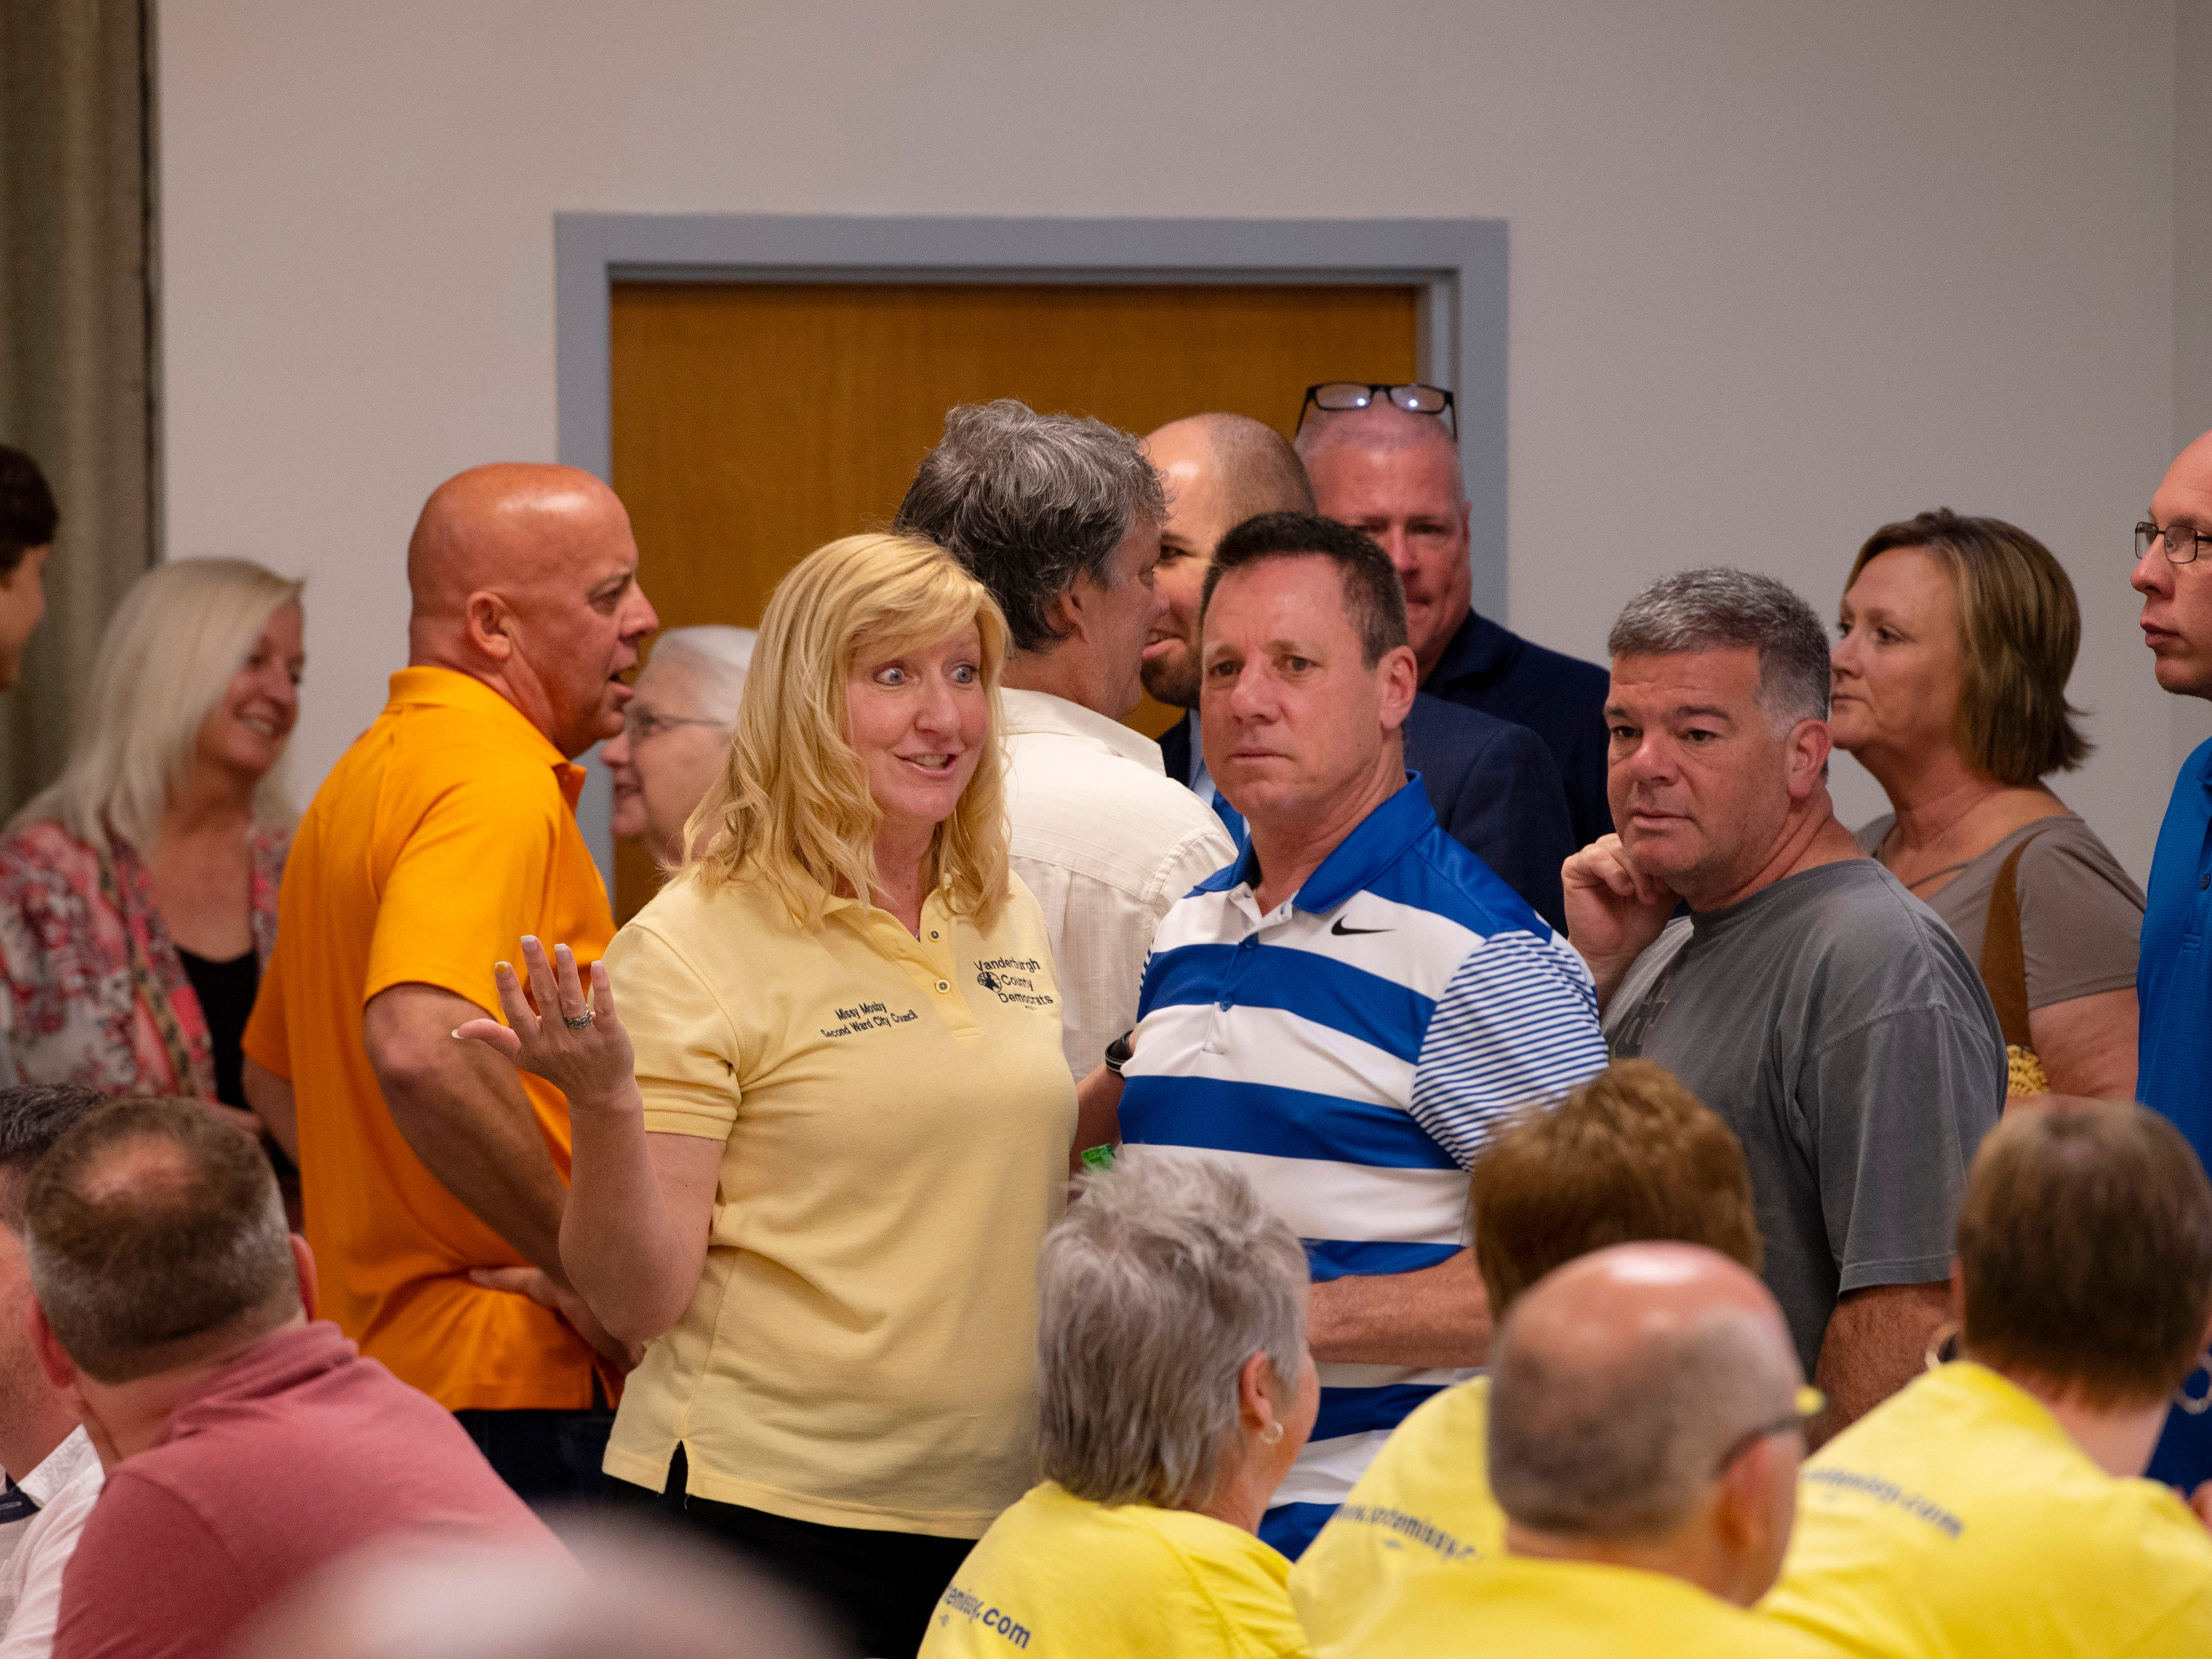 City Council member Missy Mosby (D), left center, and Vanderburgh County Sheriff Dave Wedding were on-hand to await Evansville primary election results at the Fraternal Order of Police Tuesday night. Mosby won the 2nd Ward contest and will face Republican Natalie Rascher in the fall general election.